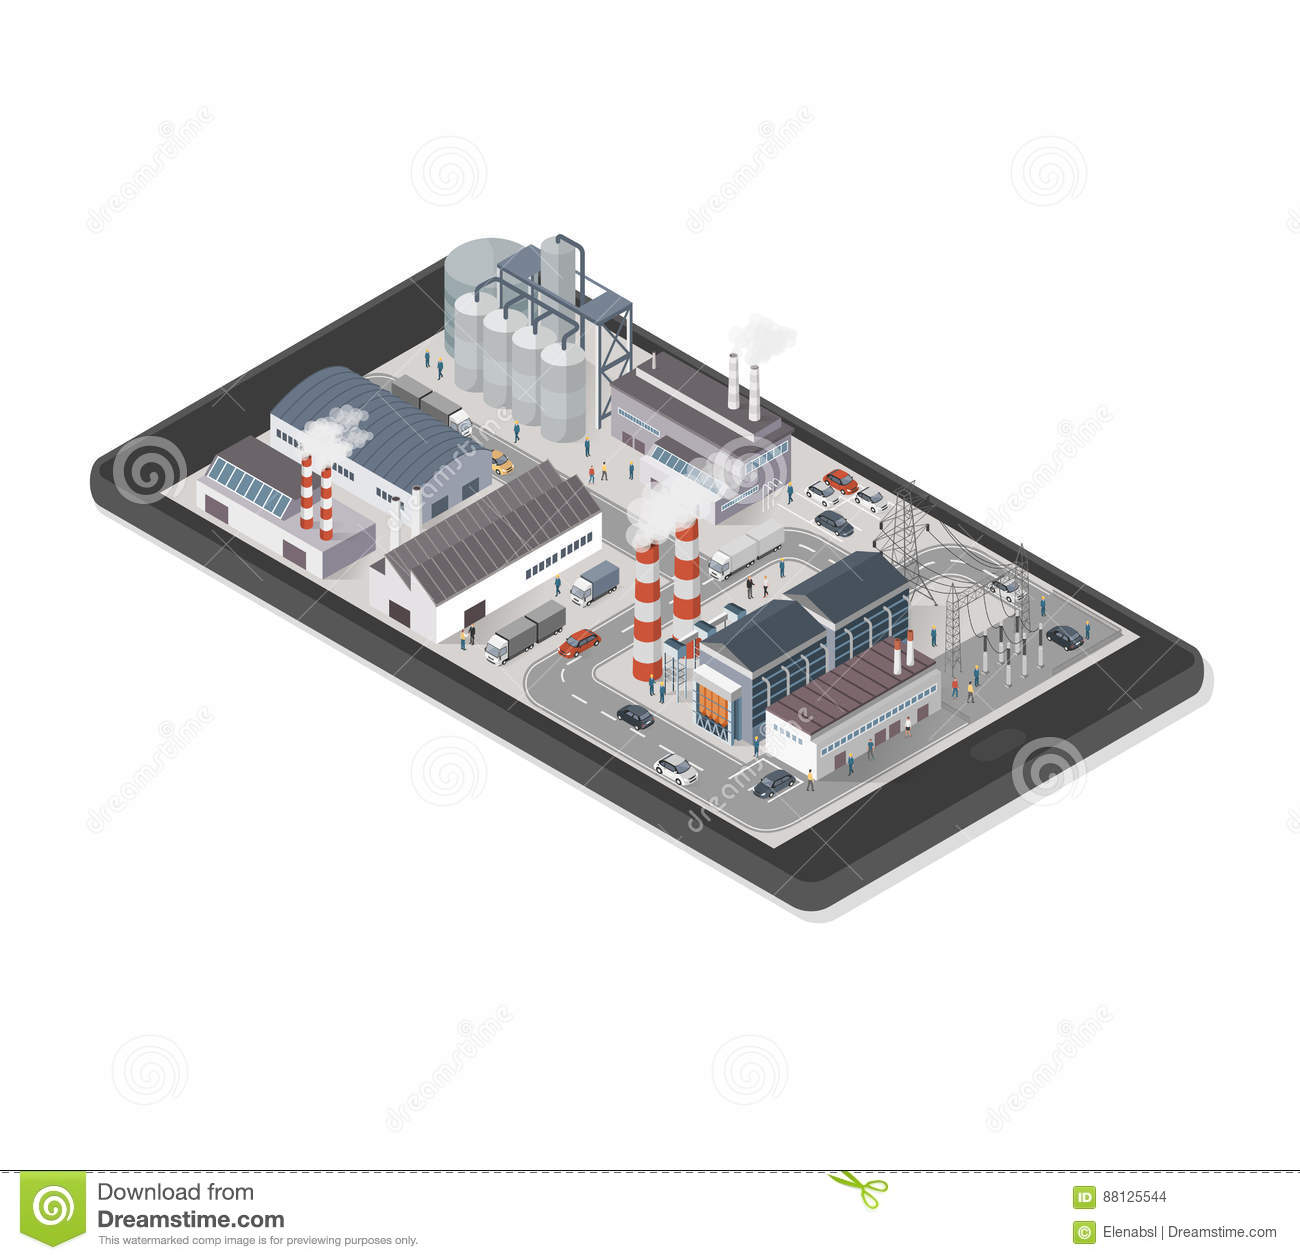 Industrial park on a smartphone